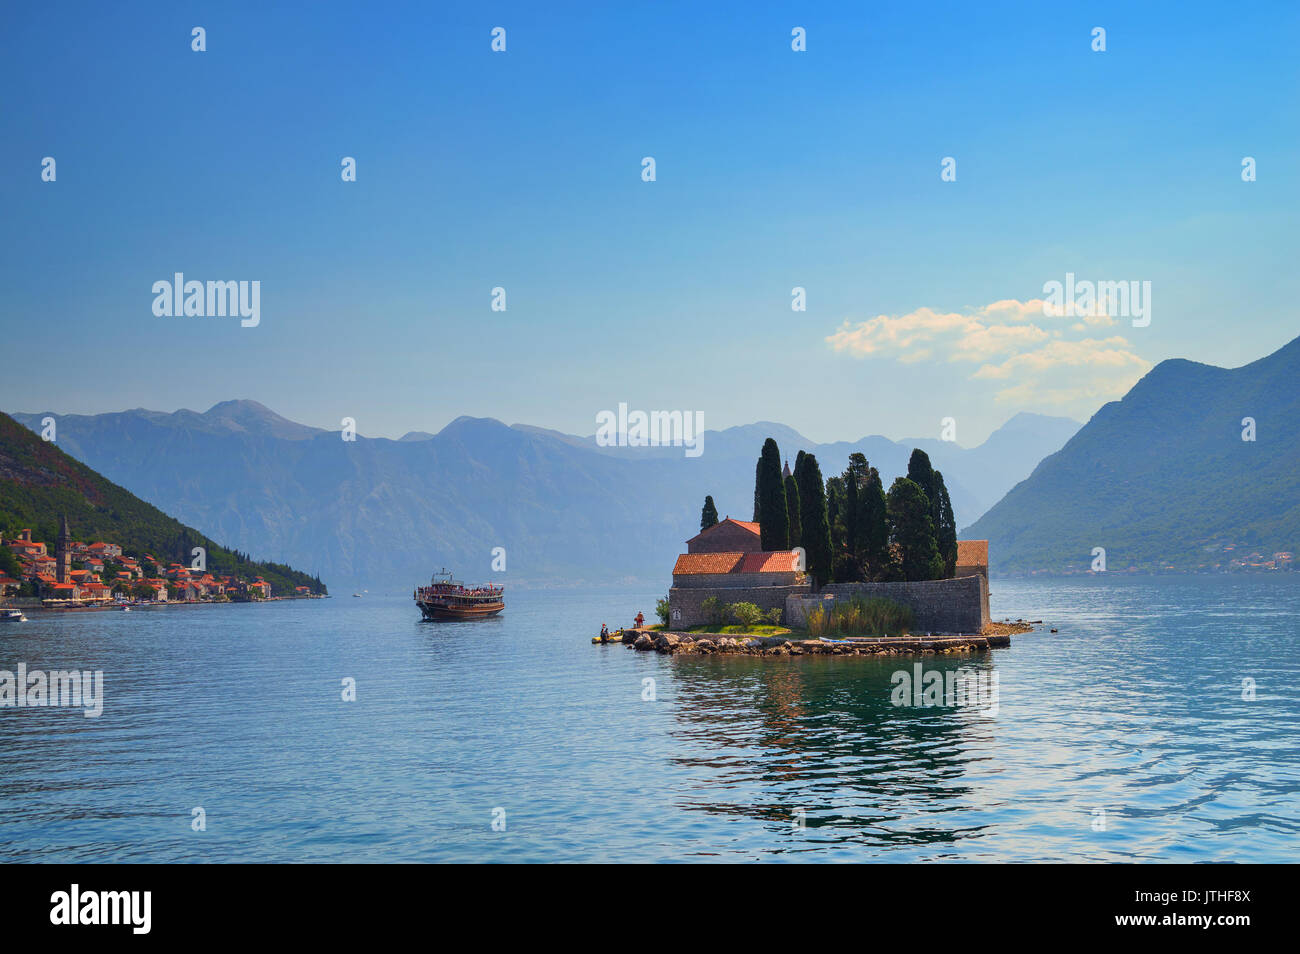 Sights of Montenegro: photos and reviews of tourists. Montenegro attractions rating 13